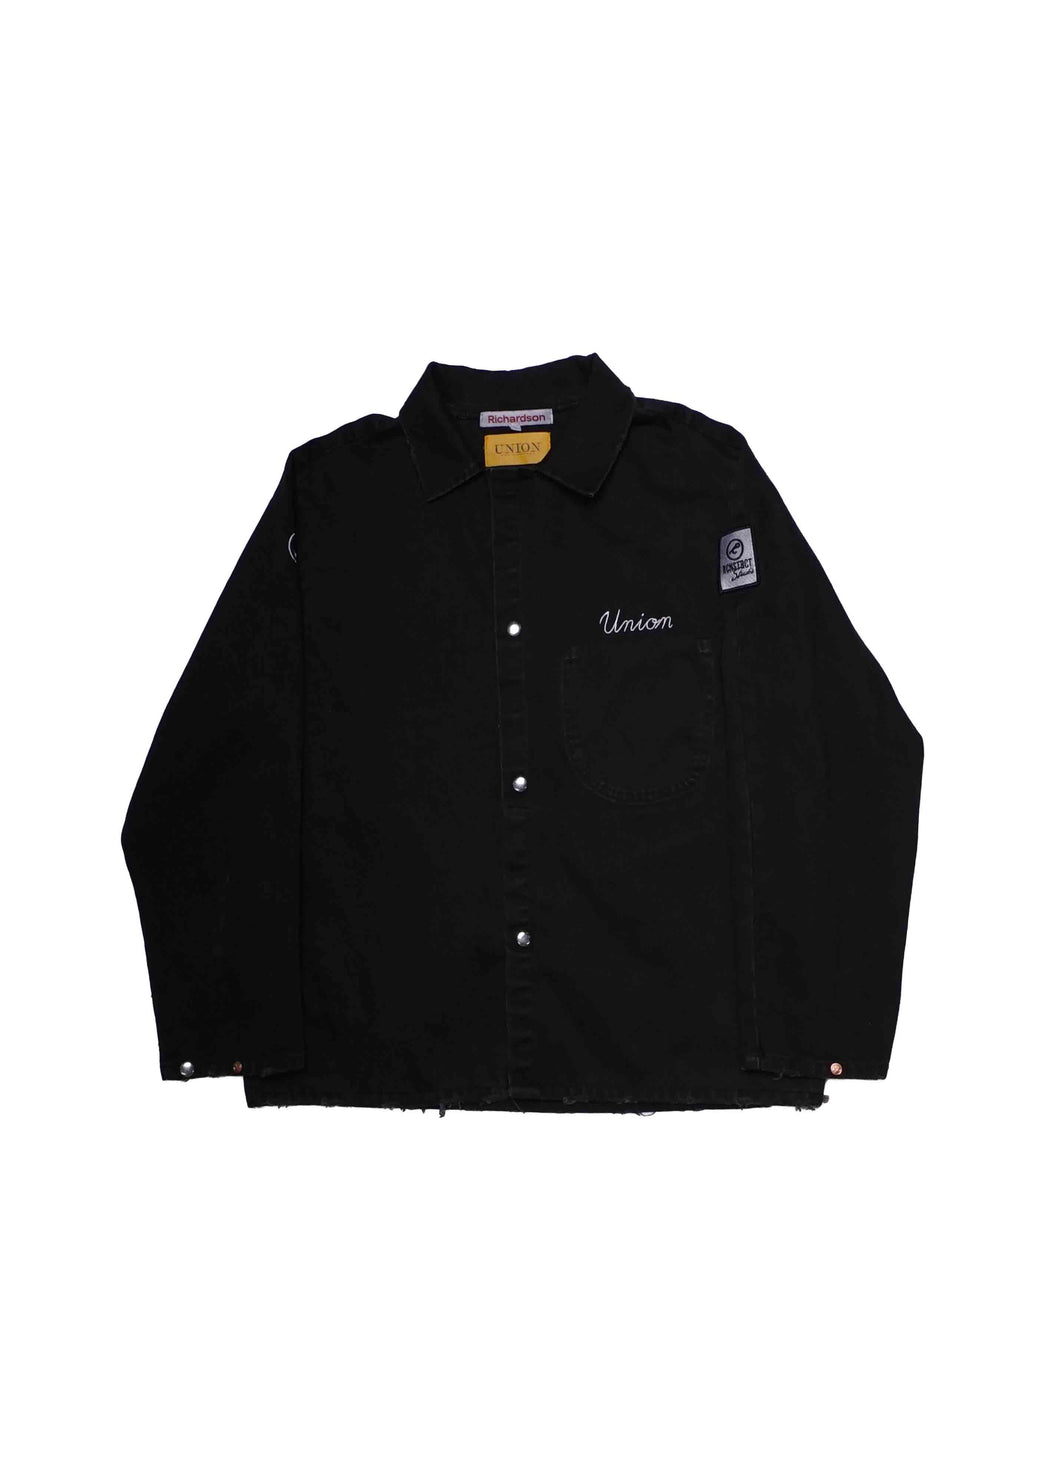 RCNSTRCT X UNION LA X RICHARDSON COLLAB DENIM JACKET